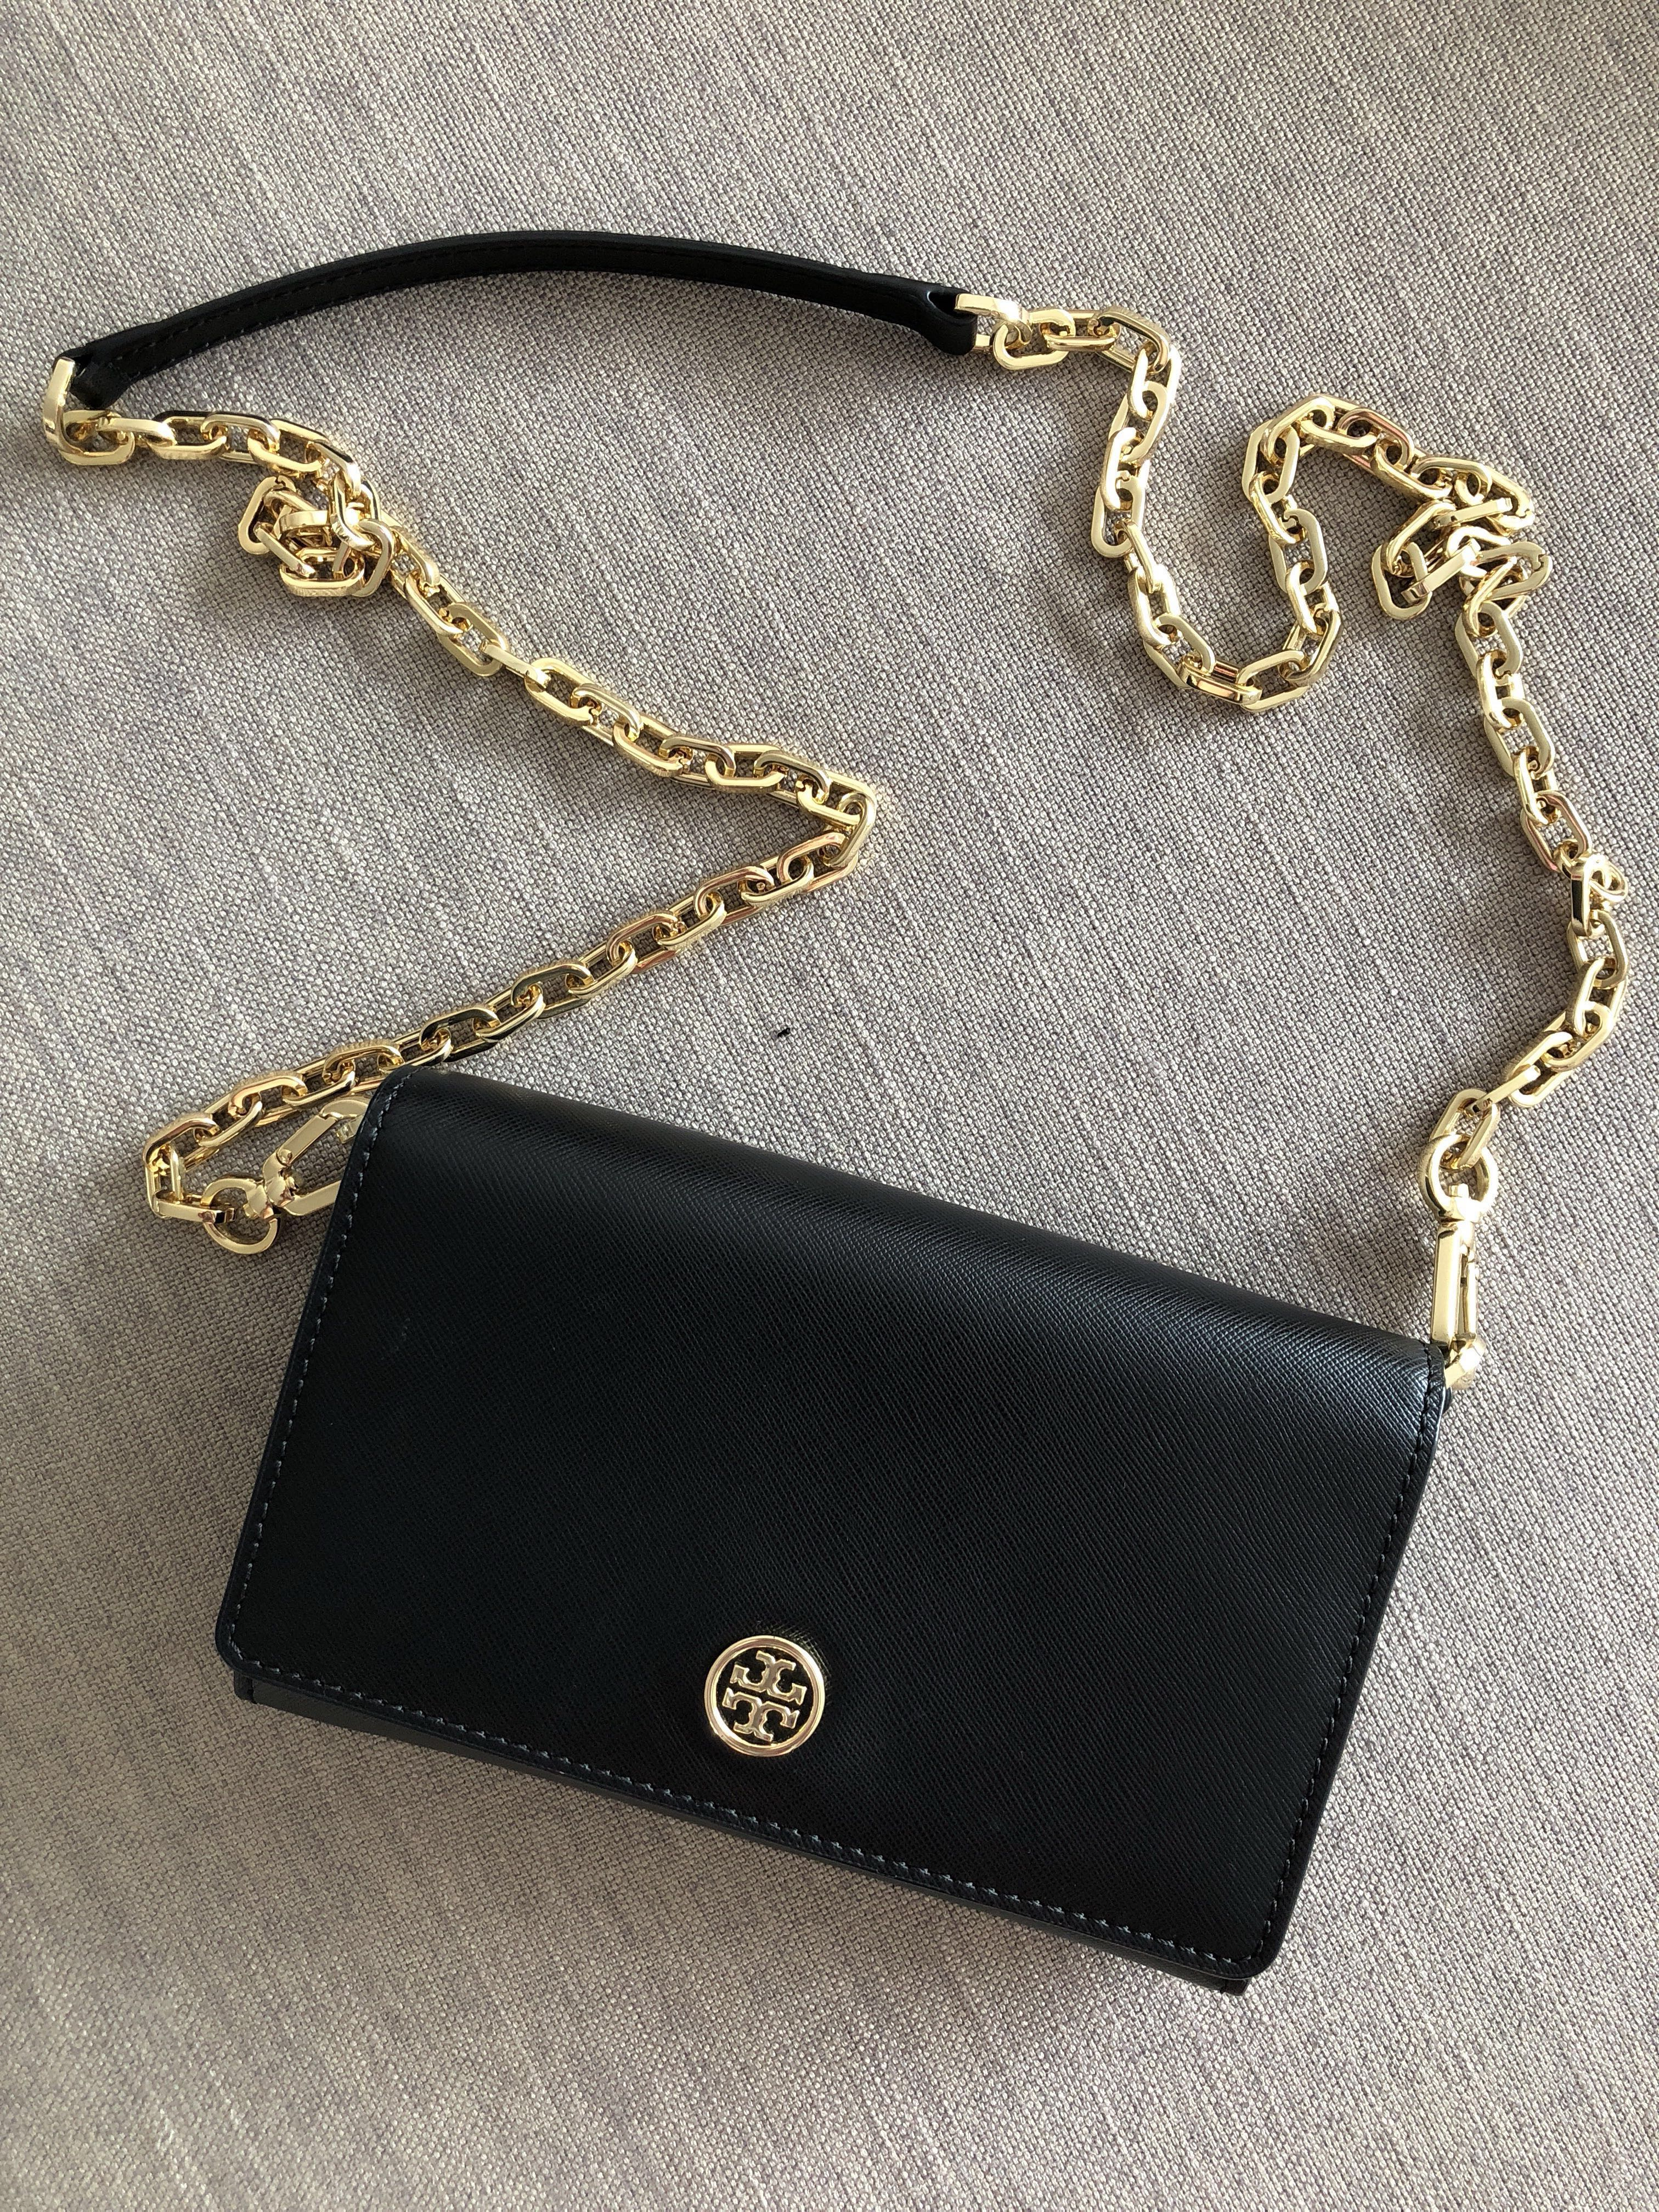 f764c0f5c6 Tory Burch Robinson Chain Wallet, Luxury, Bags & Wallets on Carousell